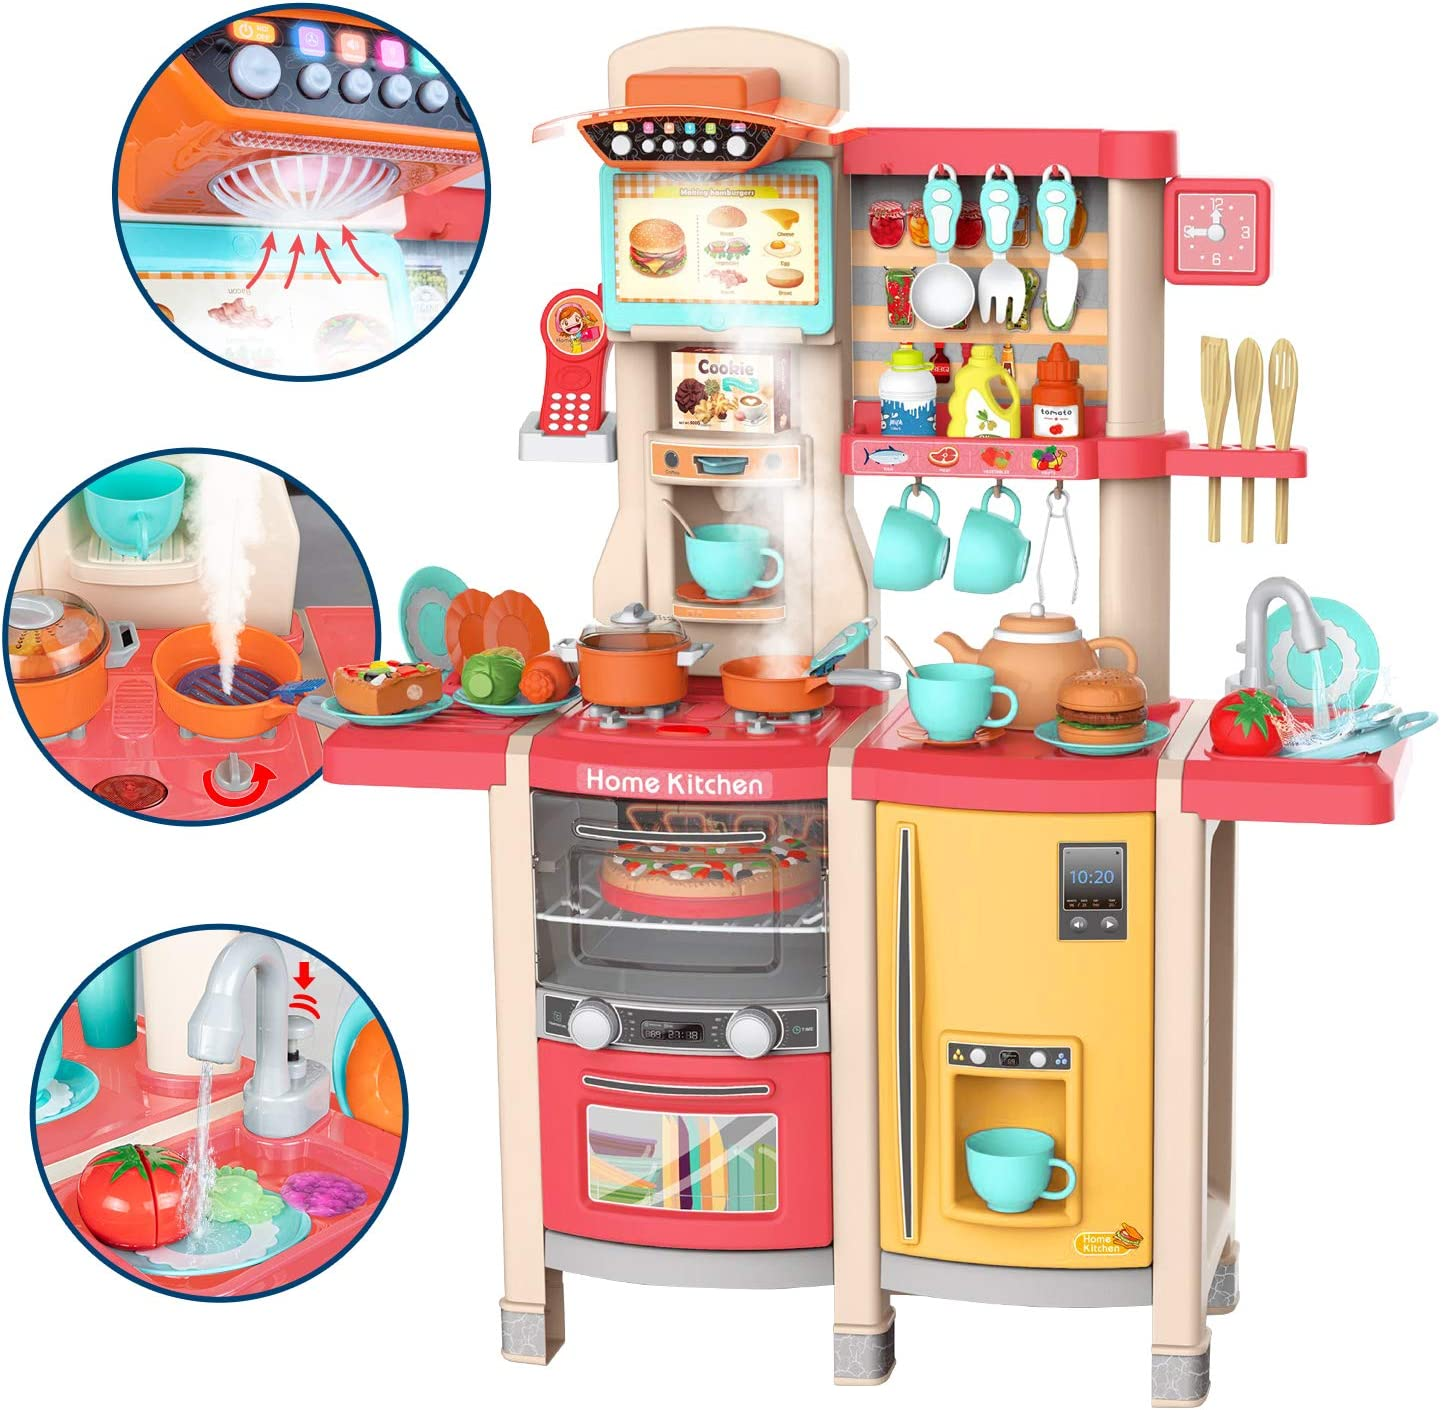 UNIH Kitchen Toy for Girls Pretend Pink Kitchen Playset Toddler Toy with Realistic Lights & Sounds,Play Oven & Sink,Coffee Toy Set,Kids Phone and Other Kitchen Accessories Toys for Kids Gift